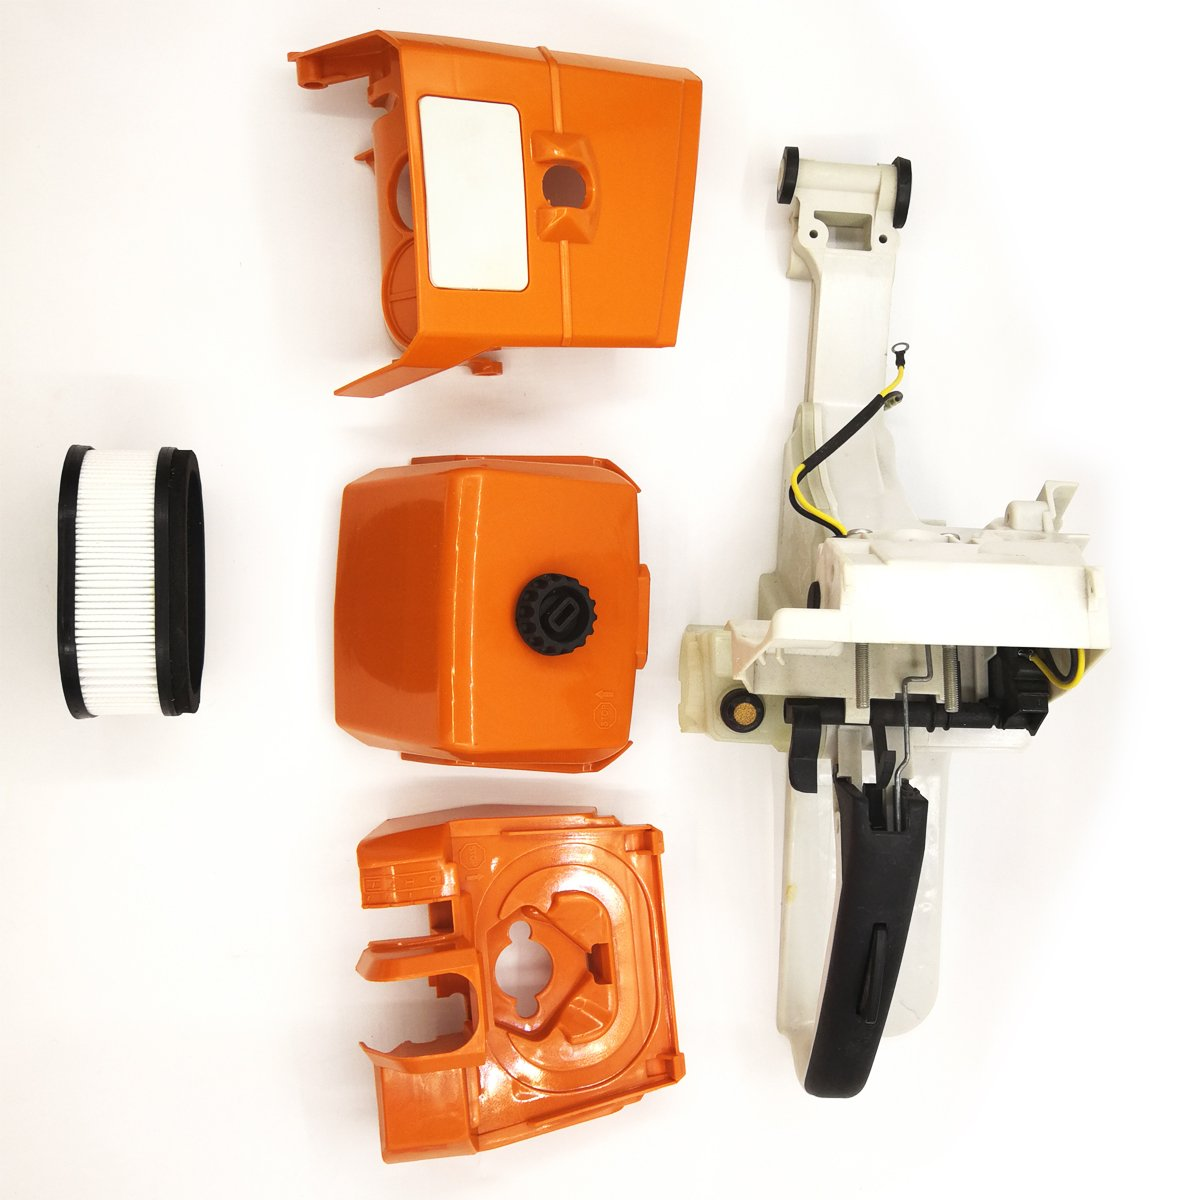 Gas Fuel Tank Rear Handle with Air Filter /& Cover Base for STIHL MS440 044